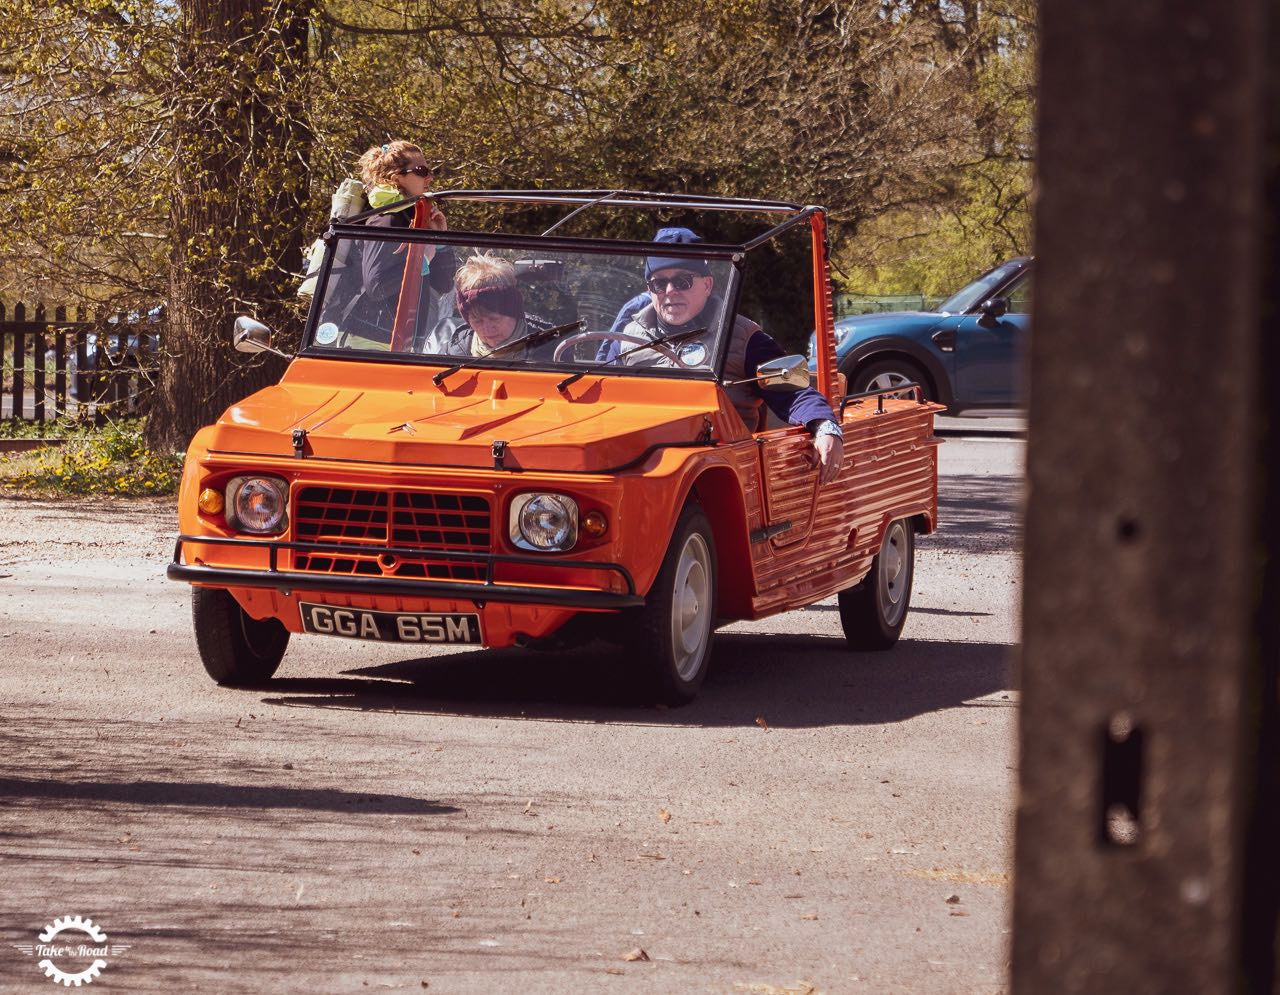 Points forts de la journée Waterloo Classics Drive it Day 2021